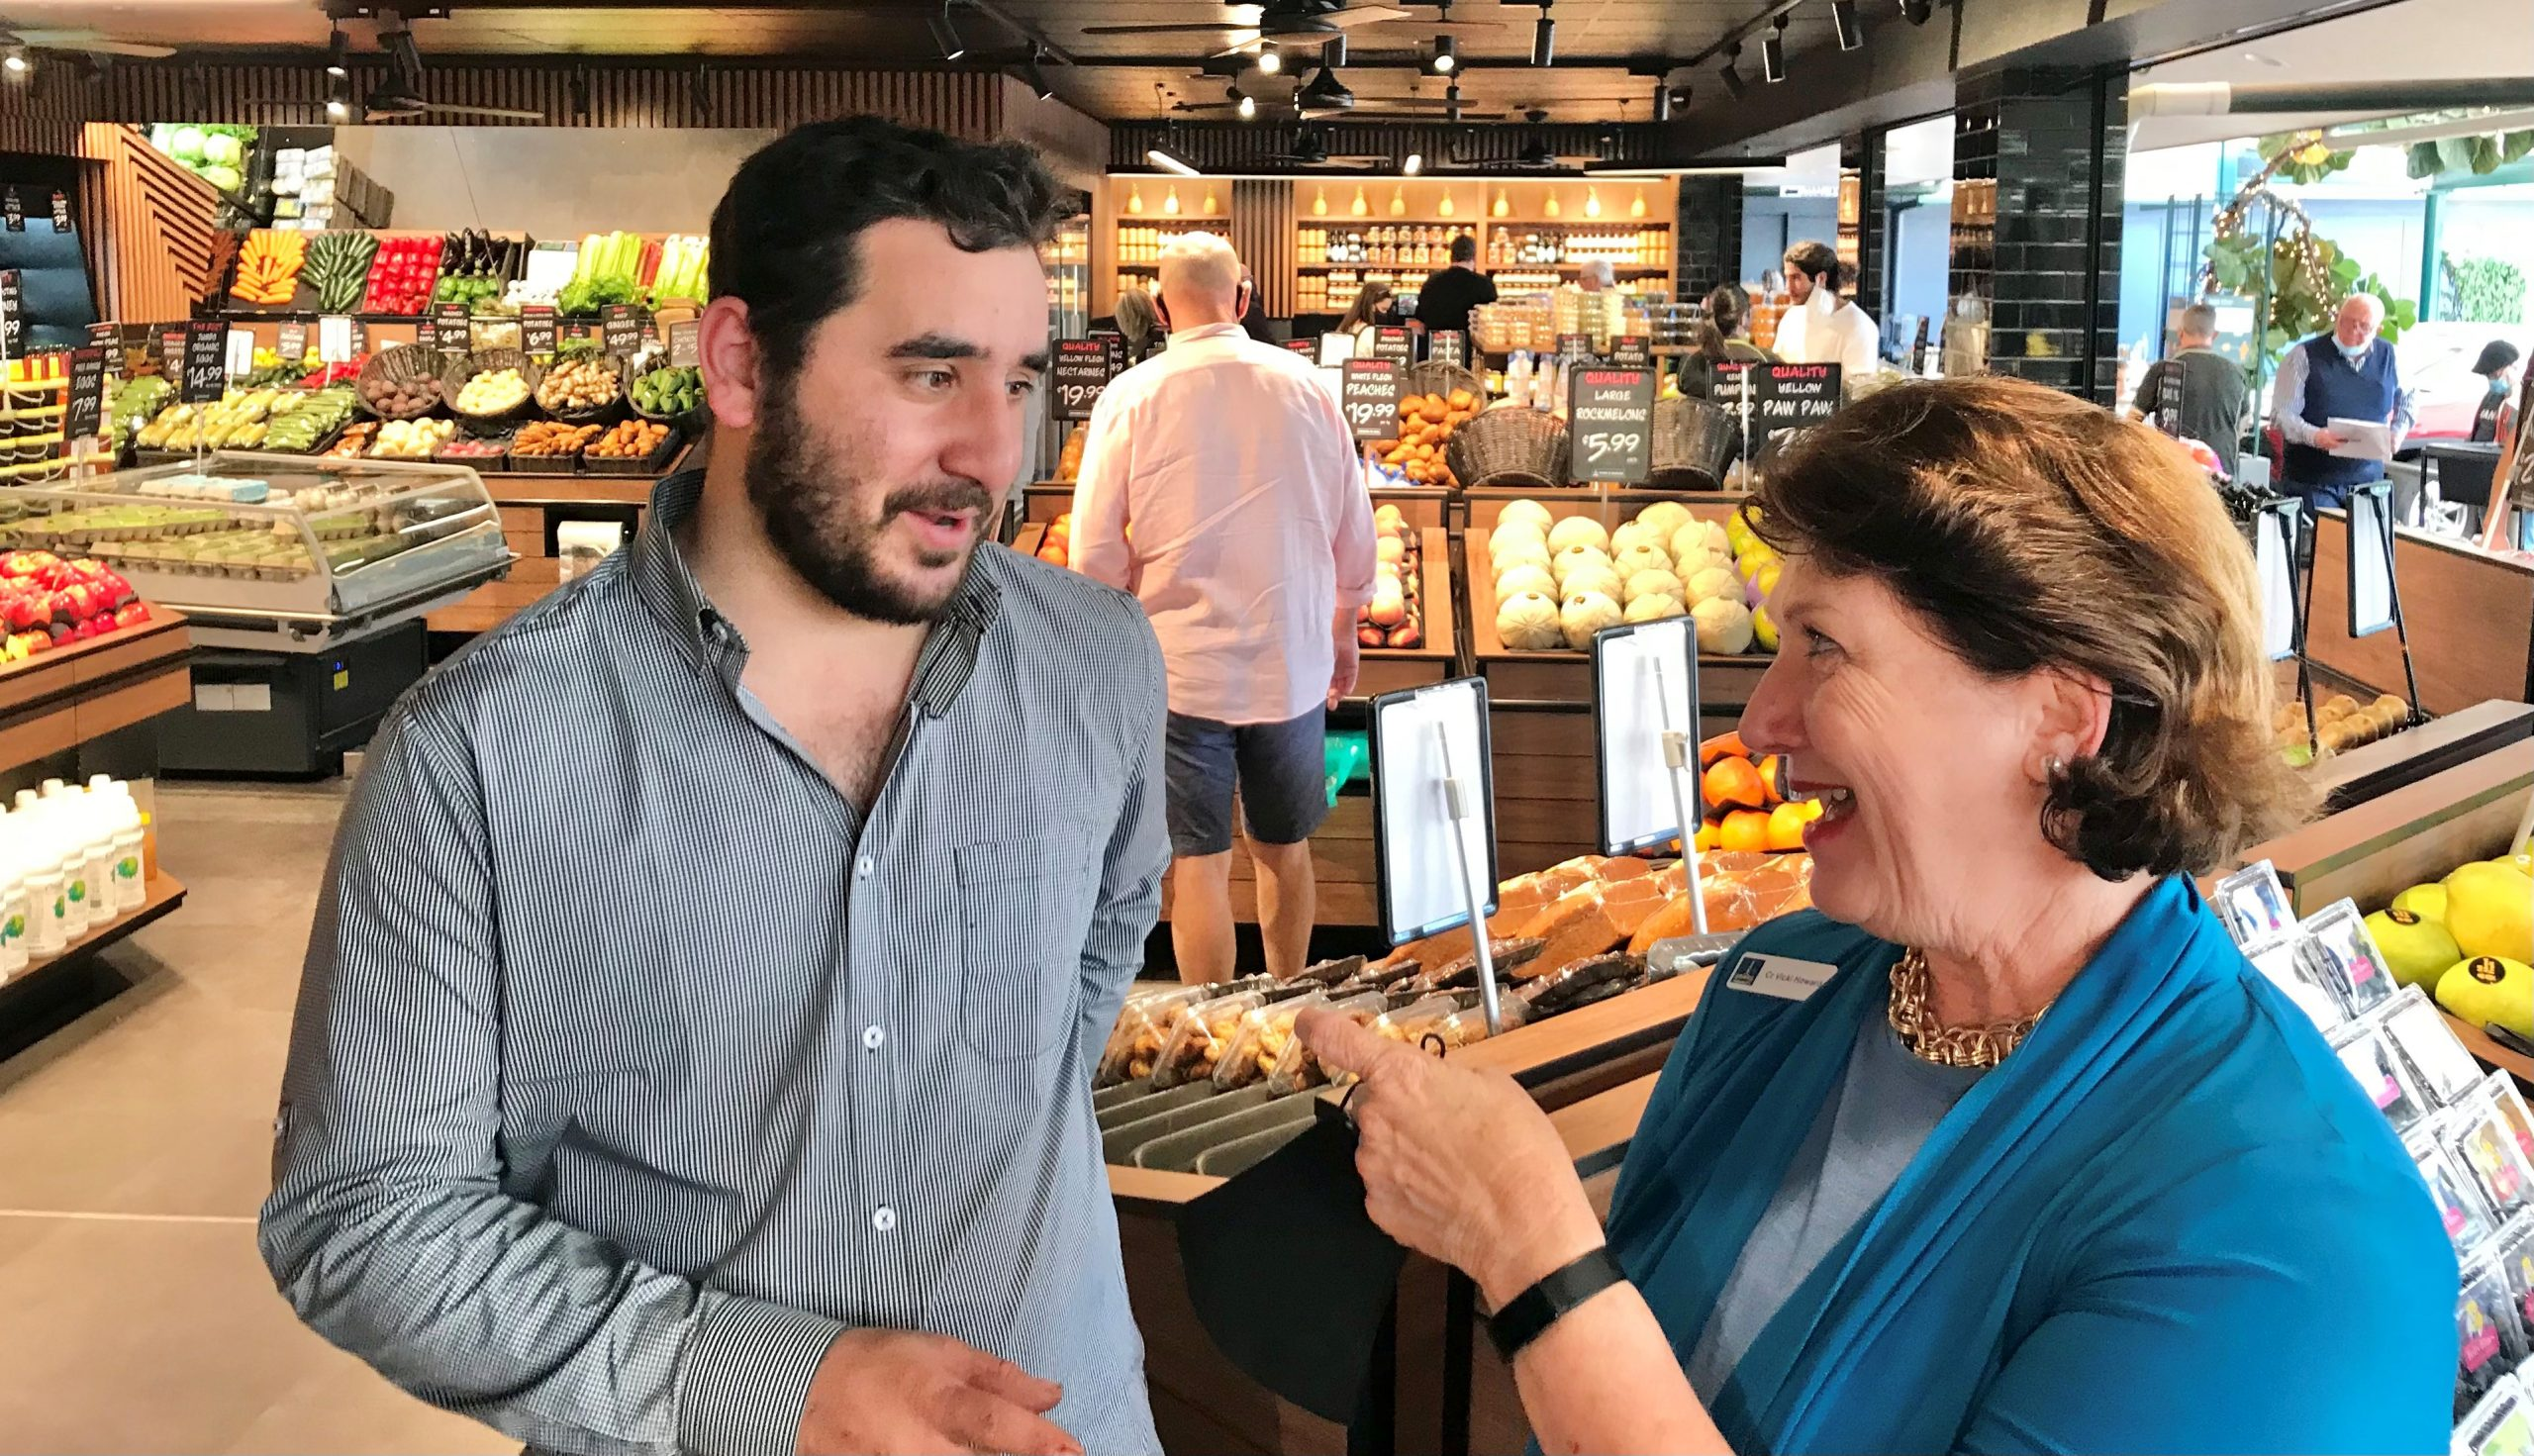 Making Central Ward the small business-friendly capital of Australia.